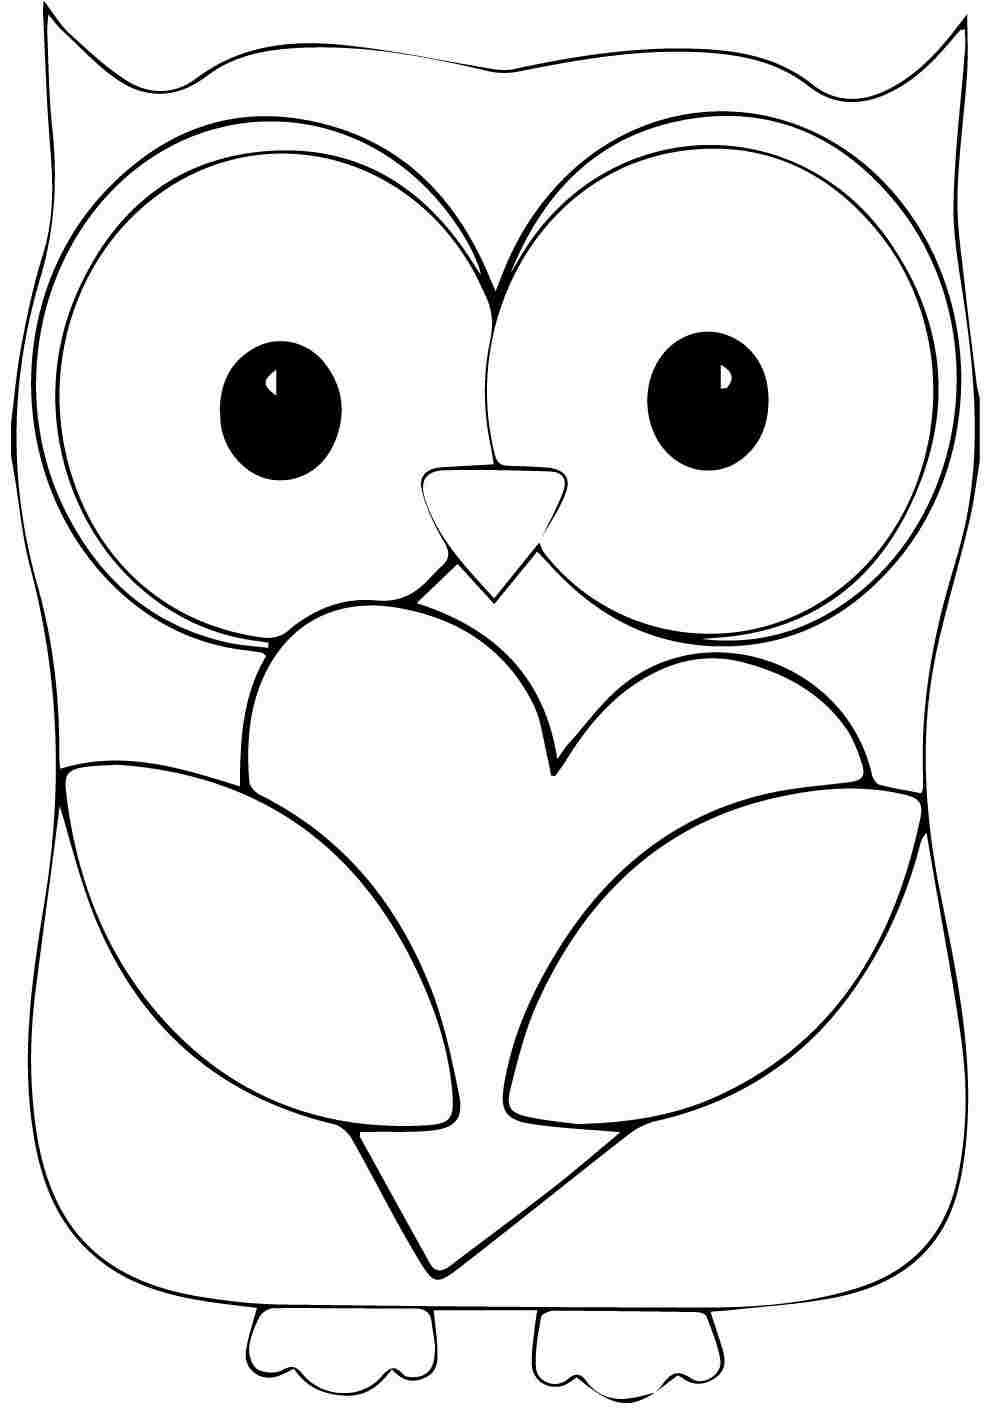 valentine owl coloring page - print full size image printable animal owl coloring